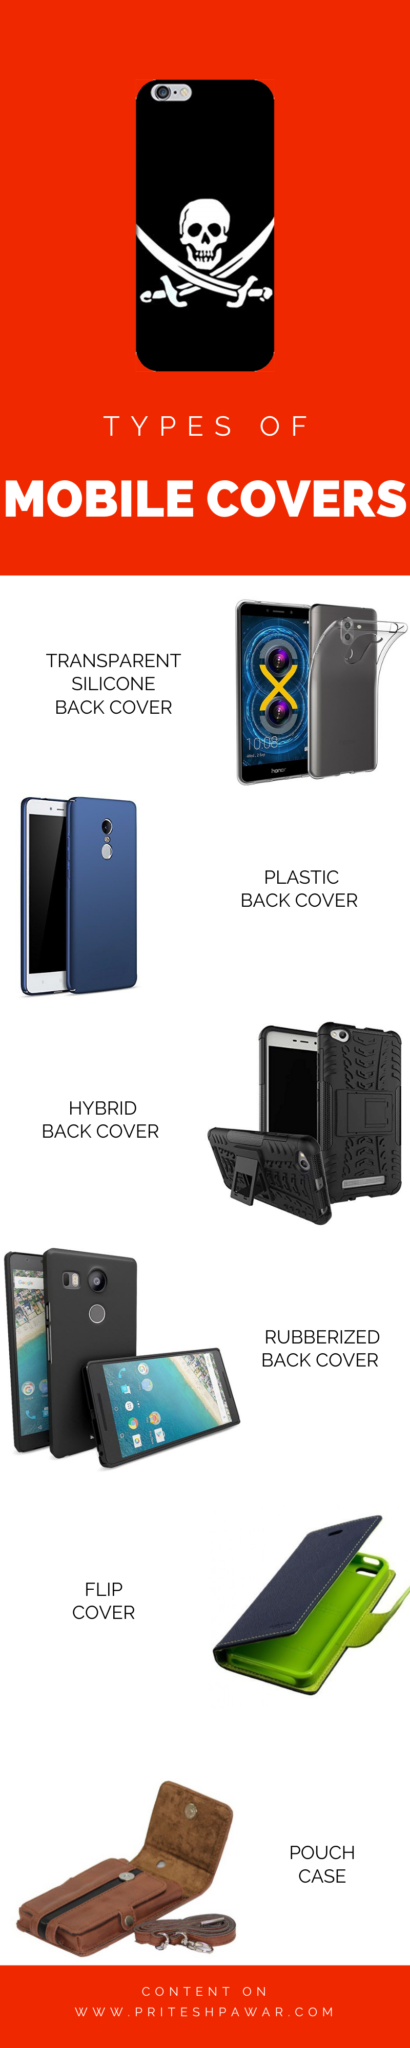 Why You Must Use Your Phone Without Cover